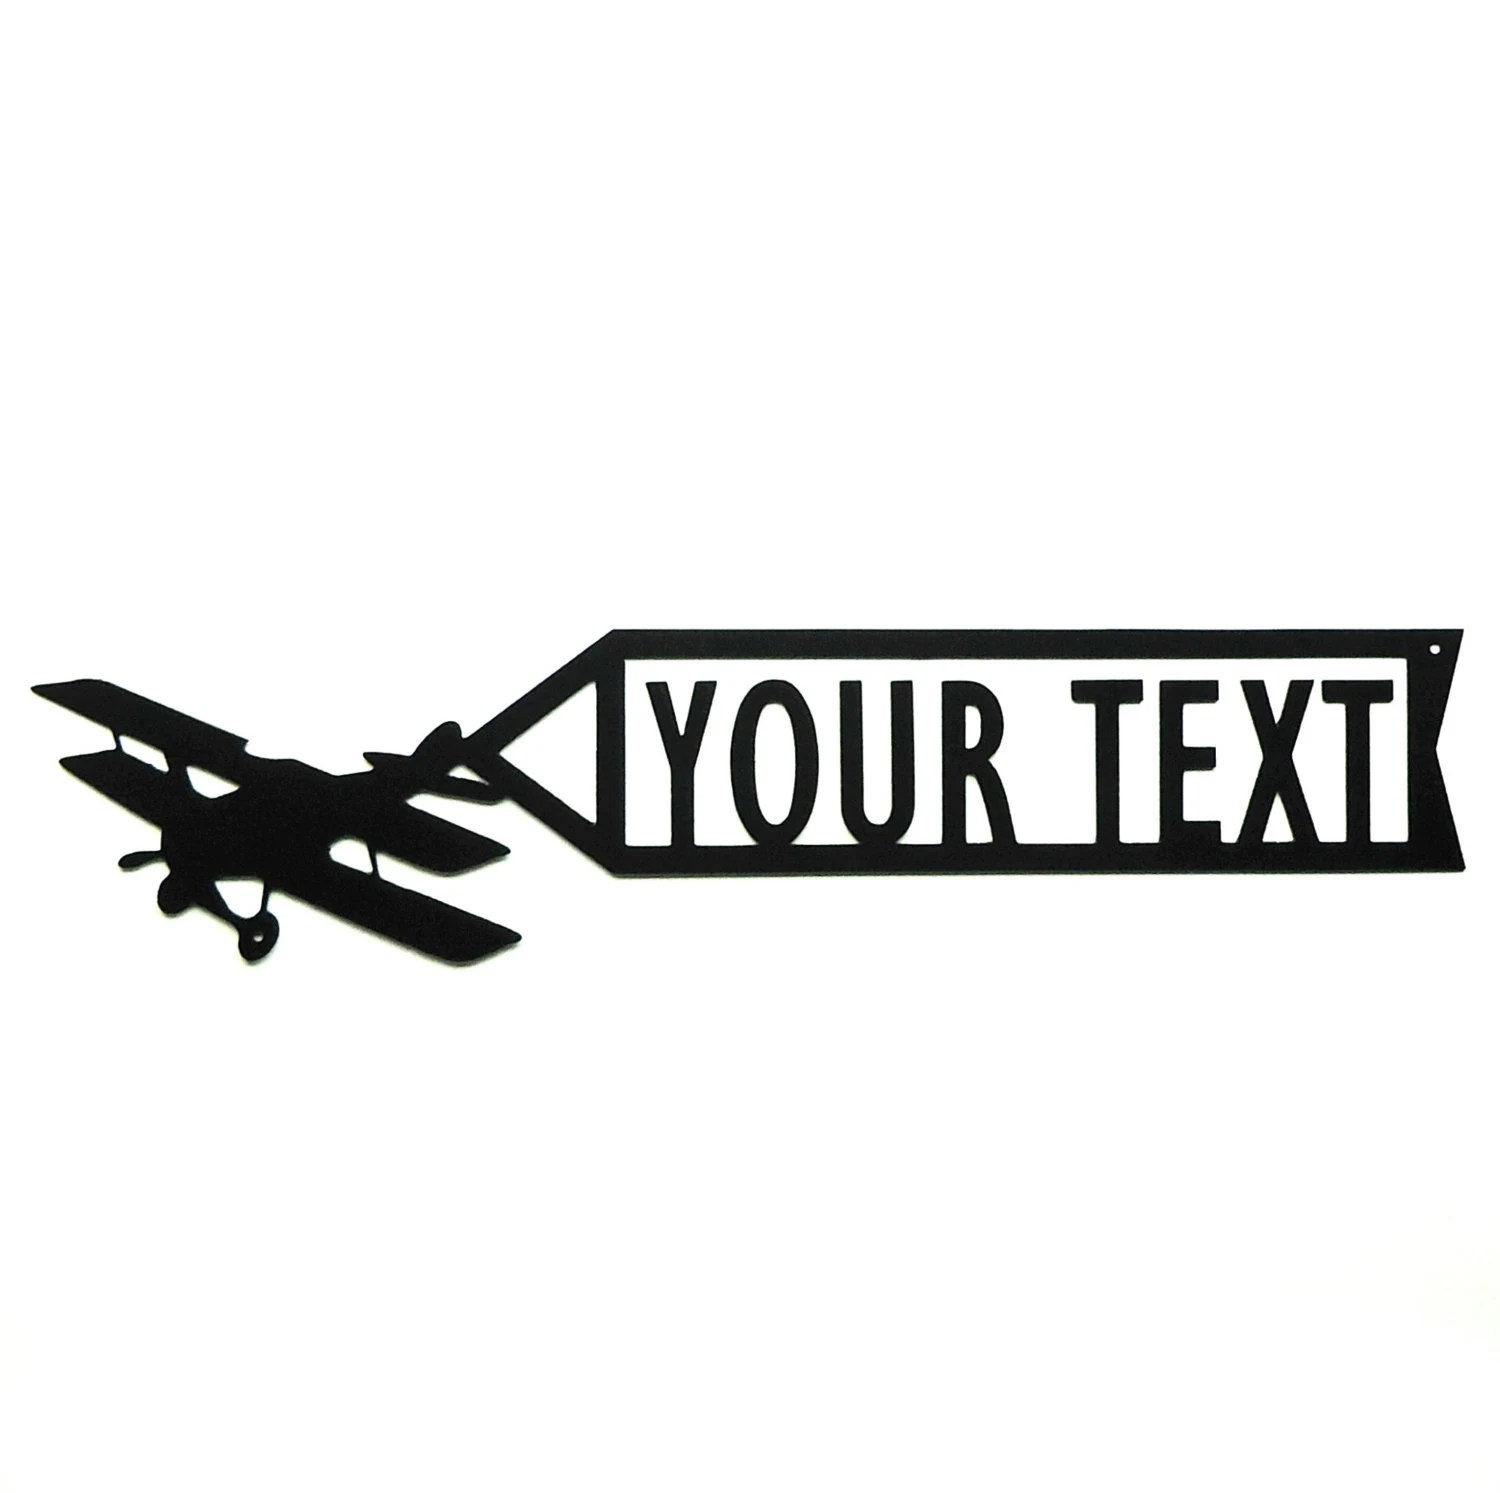 Personalized Airplane Banner Metal Art Sign Free Usa